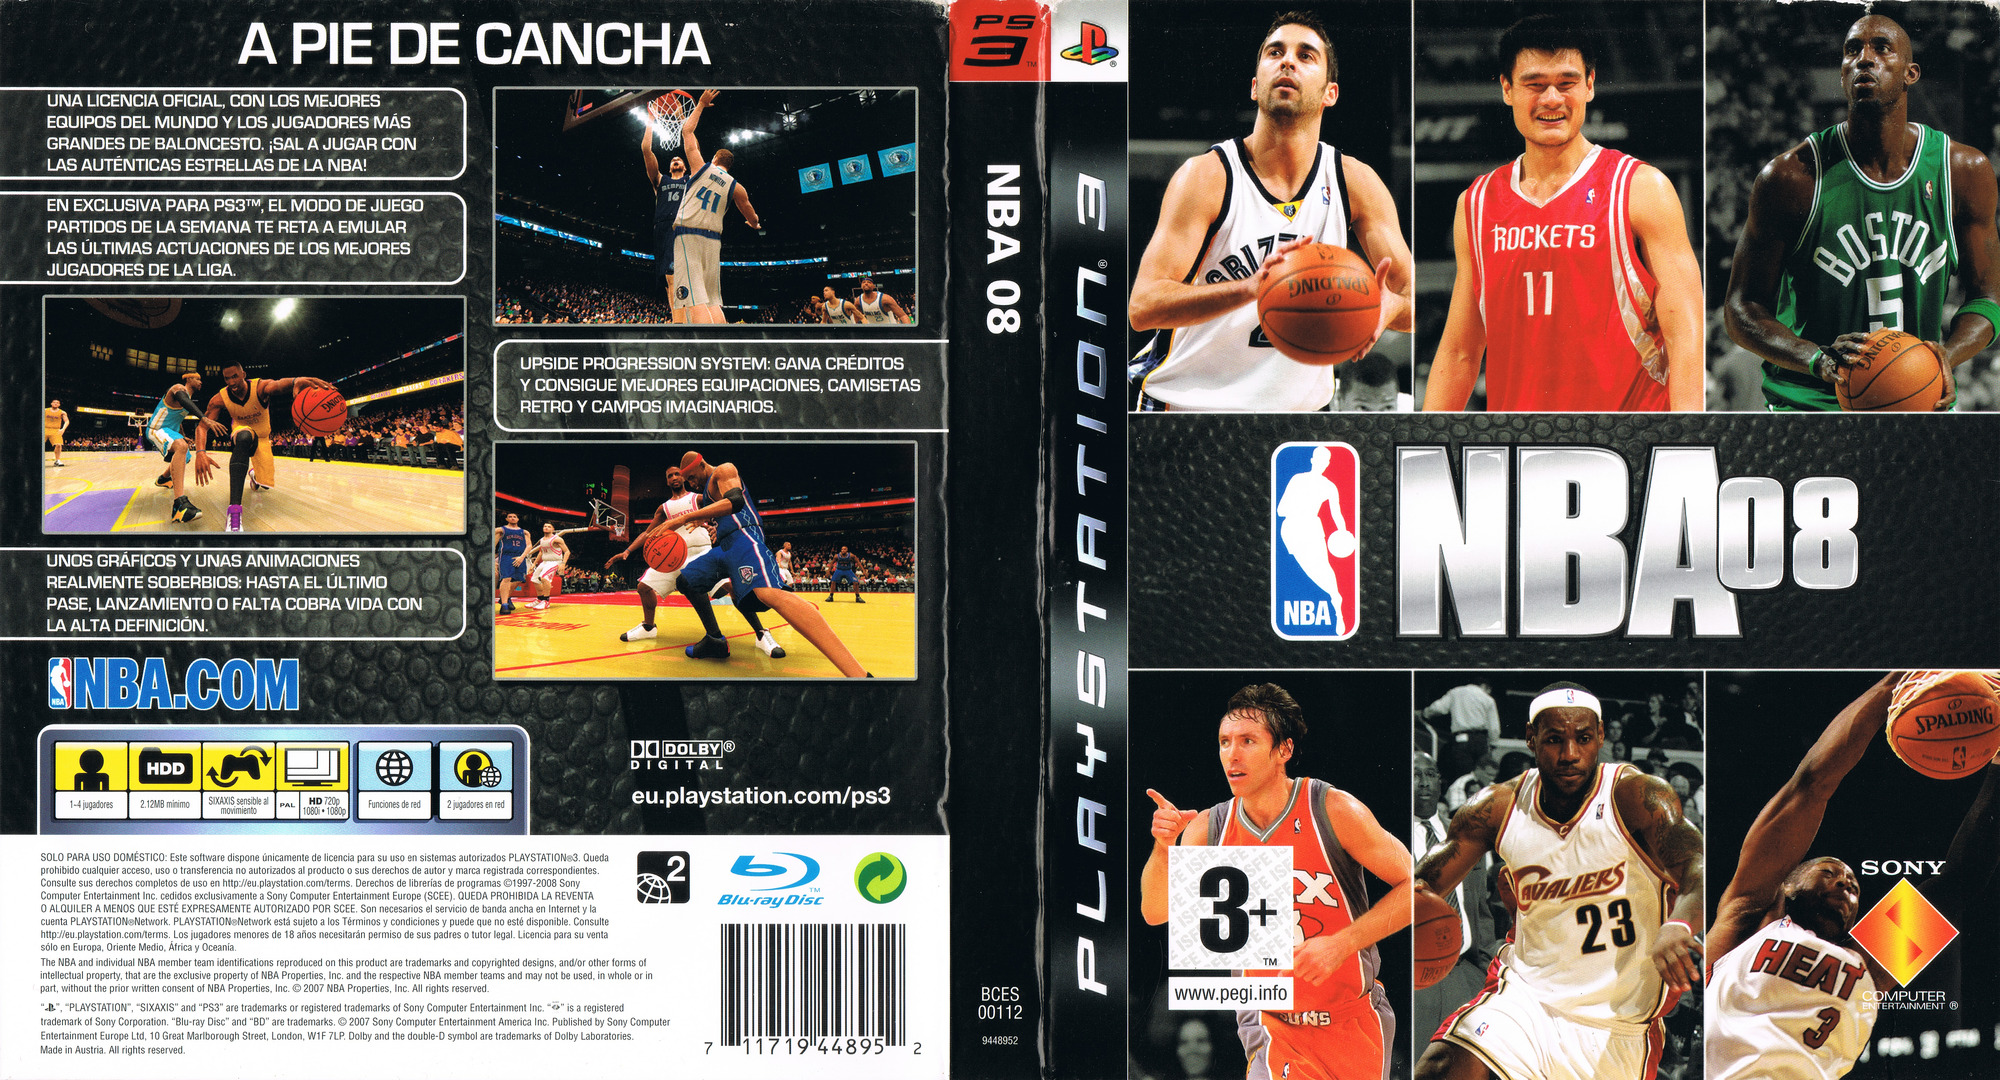 PS3 coverfullHQ (BCES00112)